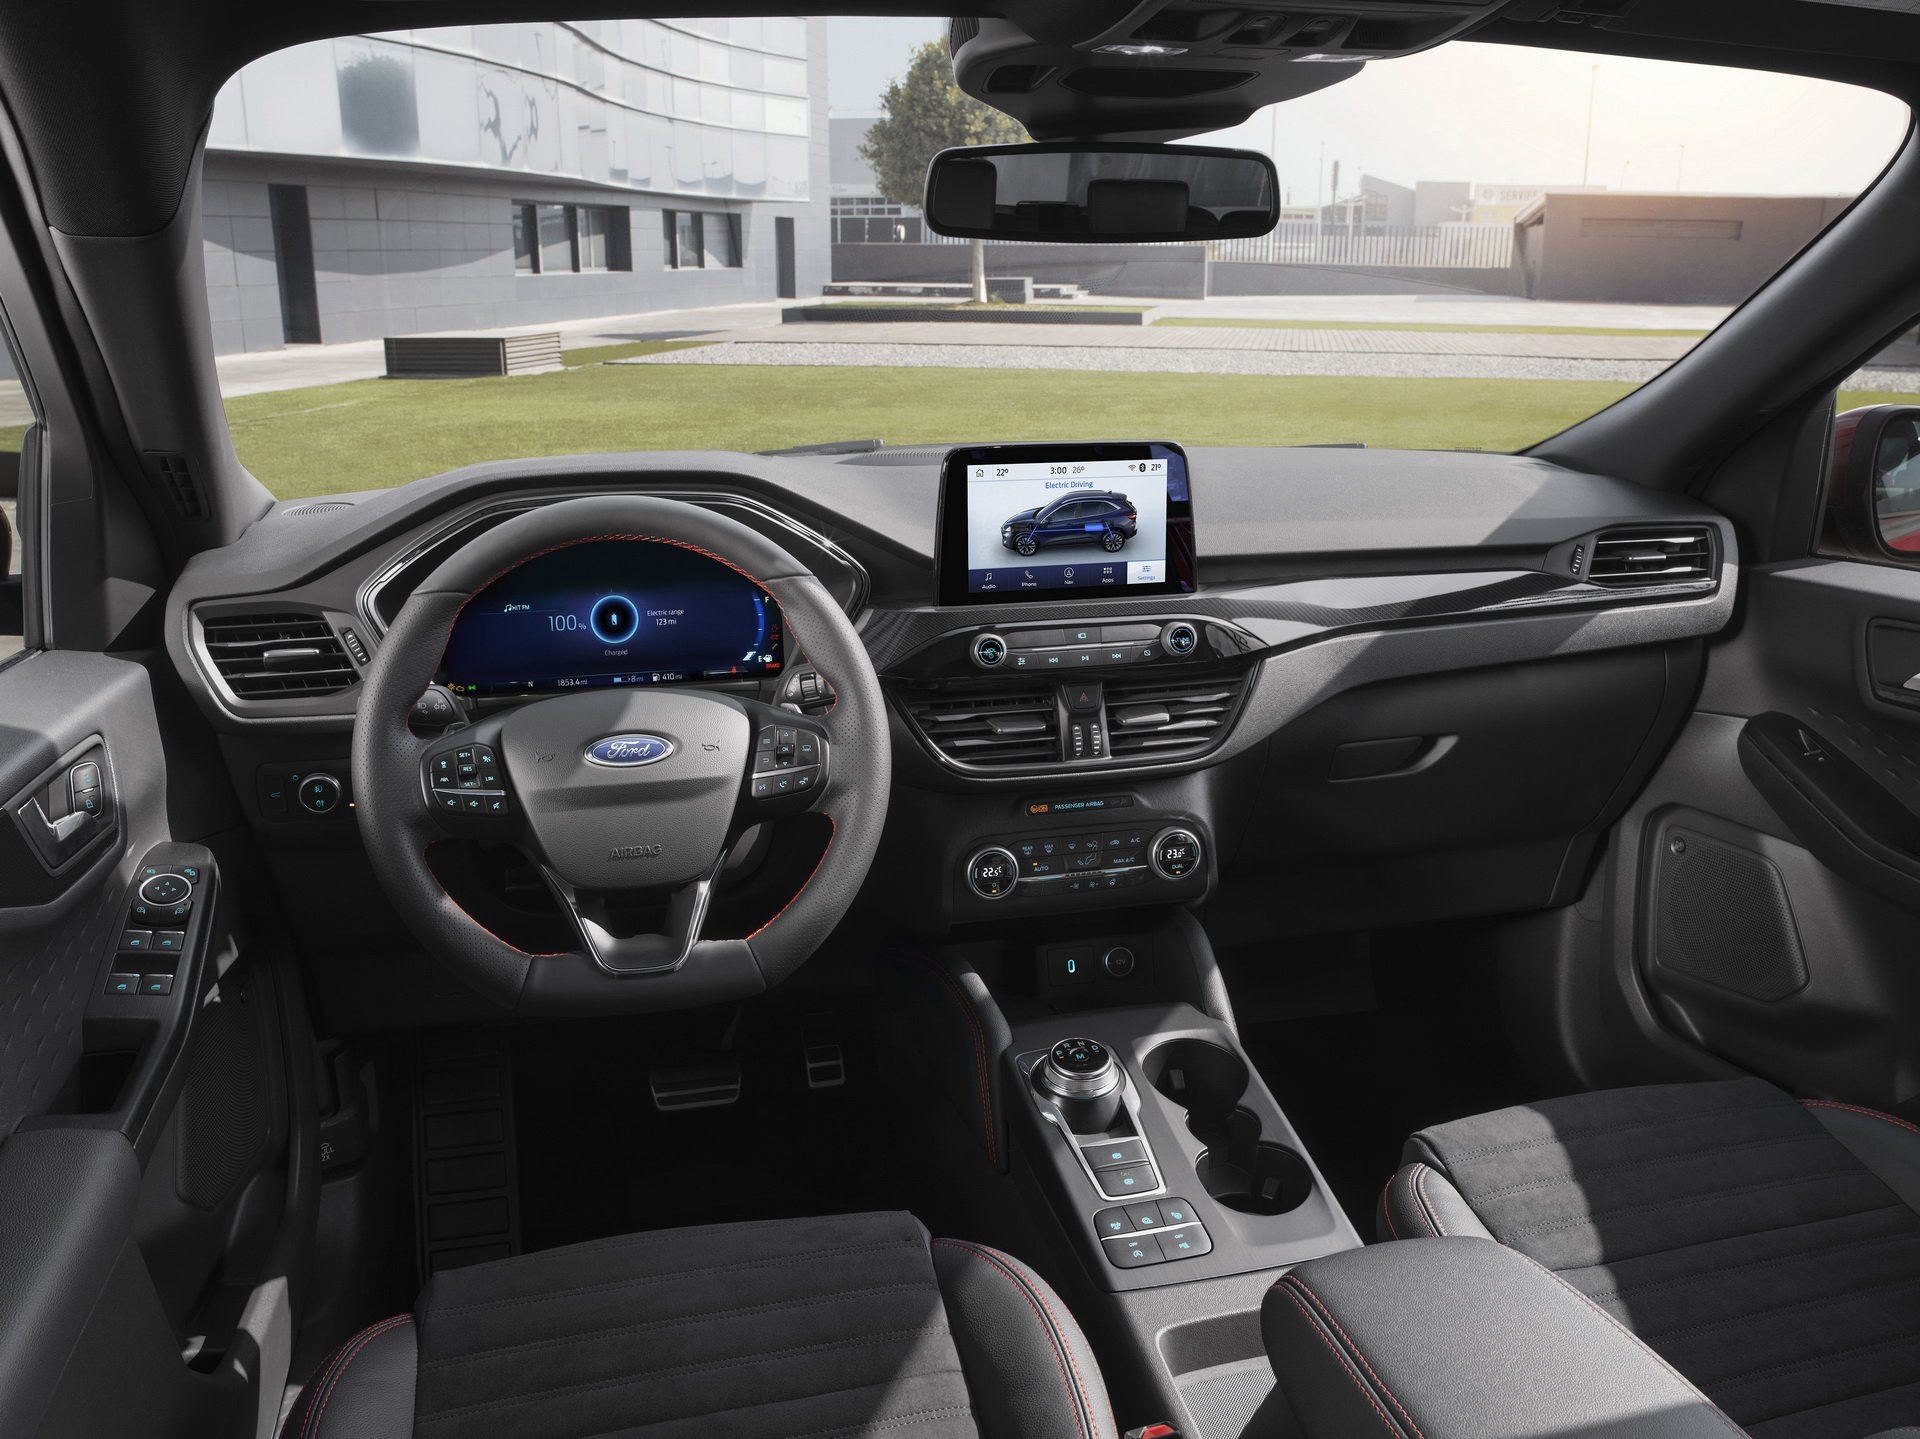 larger-lighter-2020-ford-kuga-debuts-with-three-hybrid-engines_16.jpg